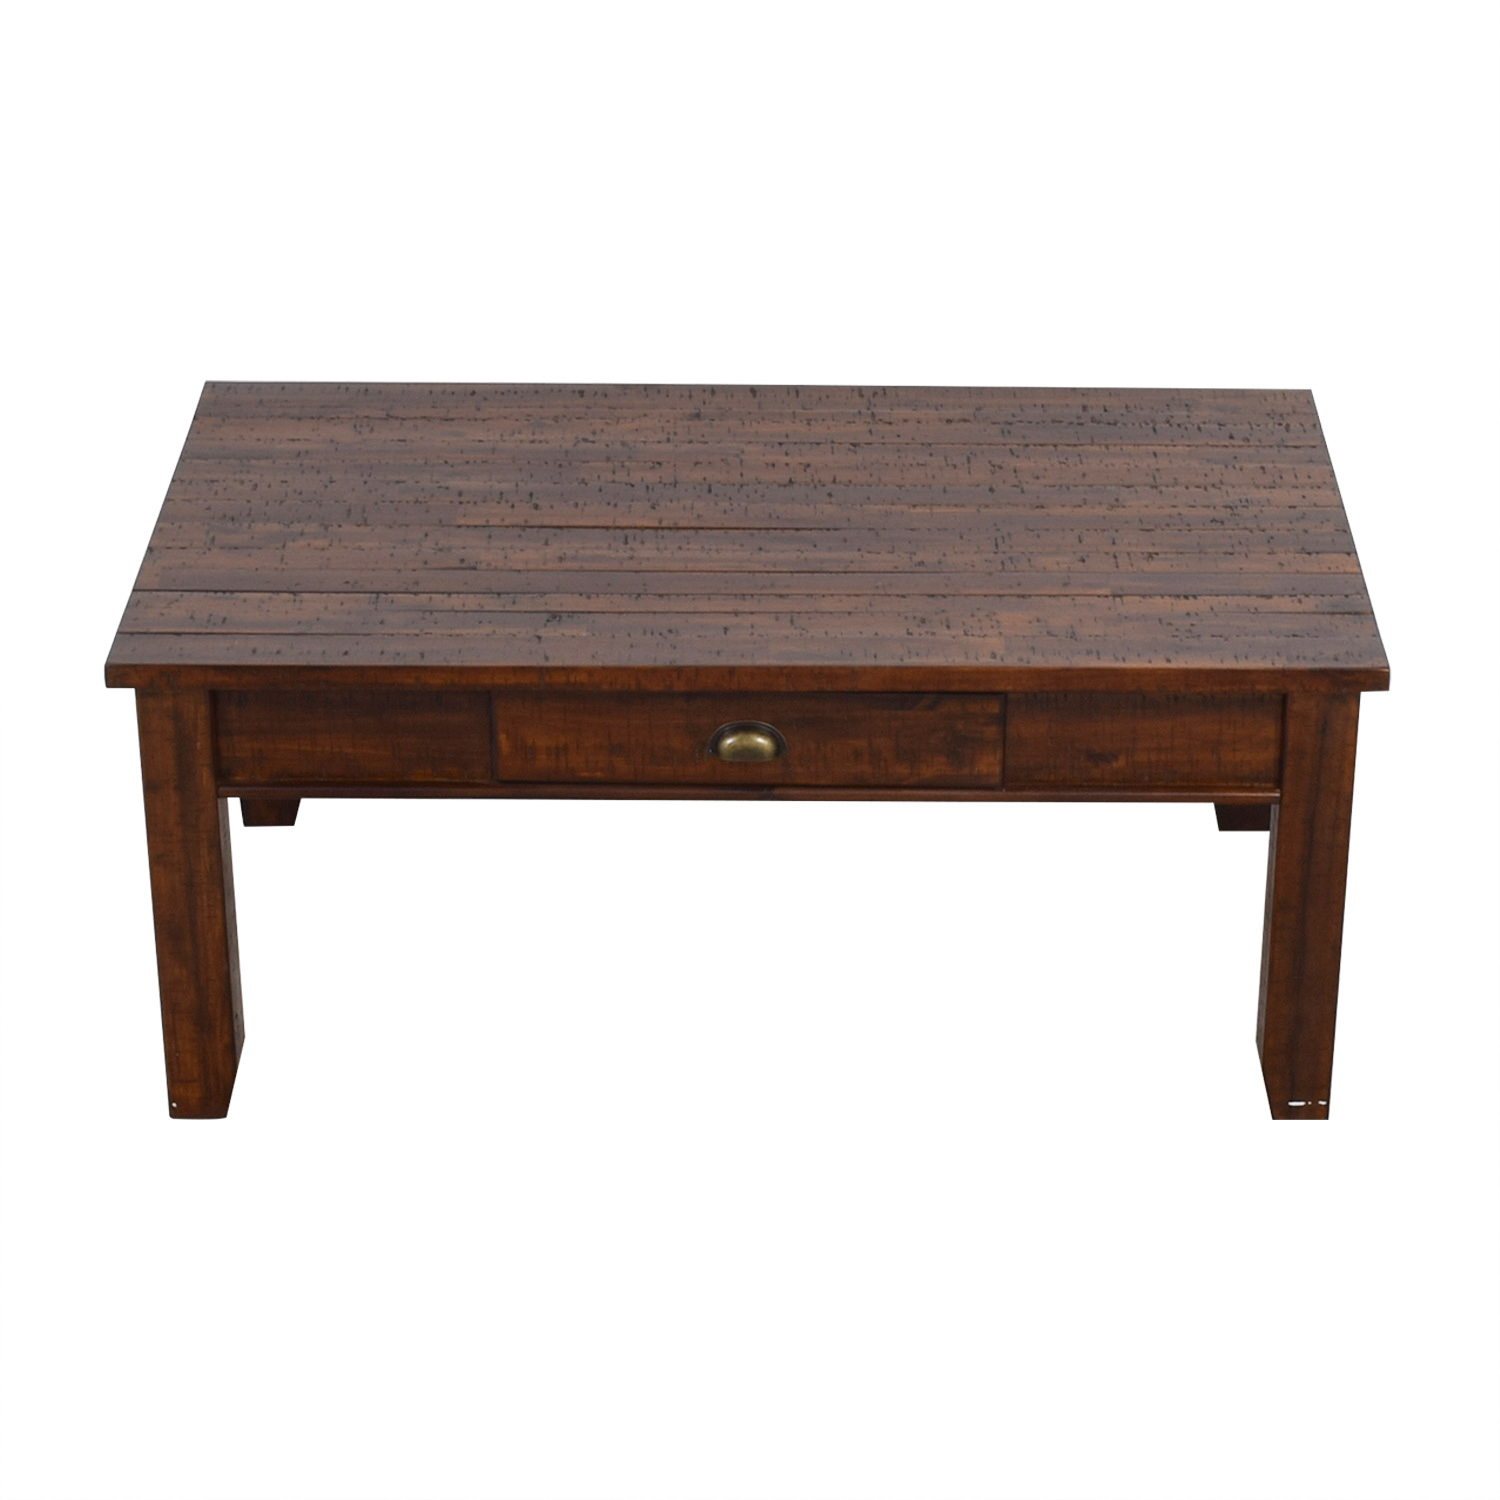 buy Raymour & Flanigan Urban Lodge Coffee Table Raymour & Flanigan Tables